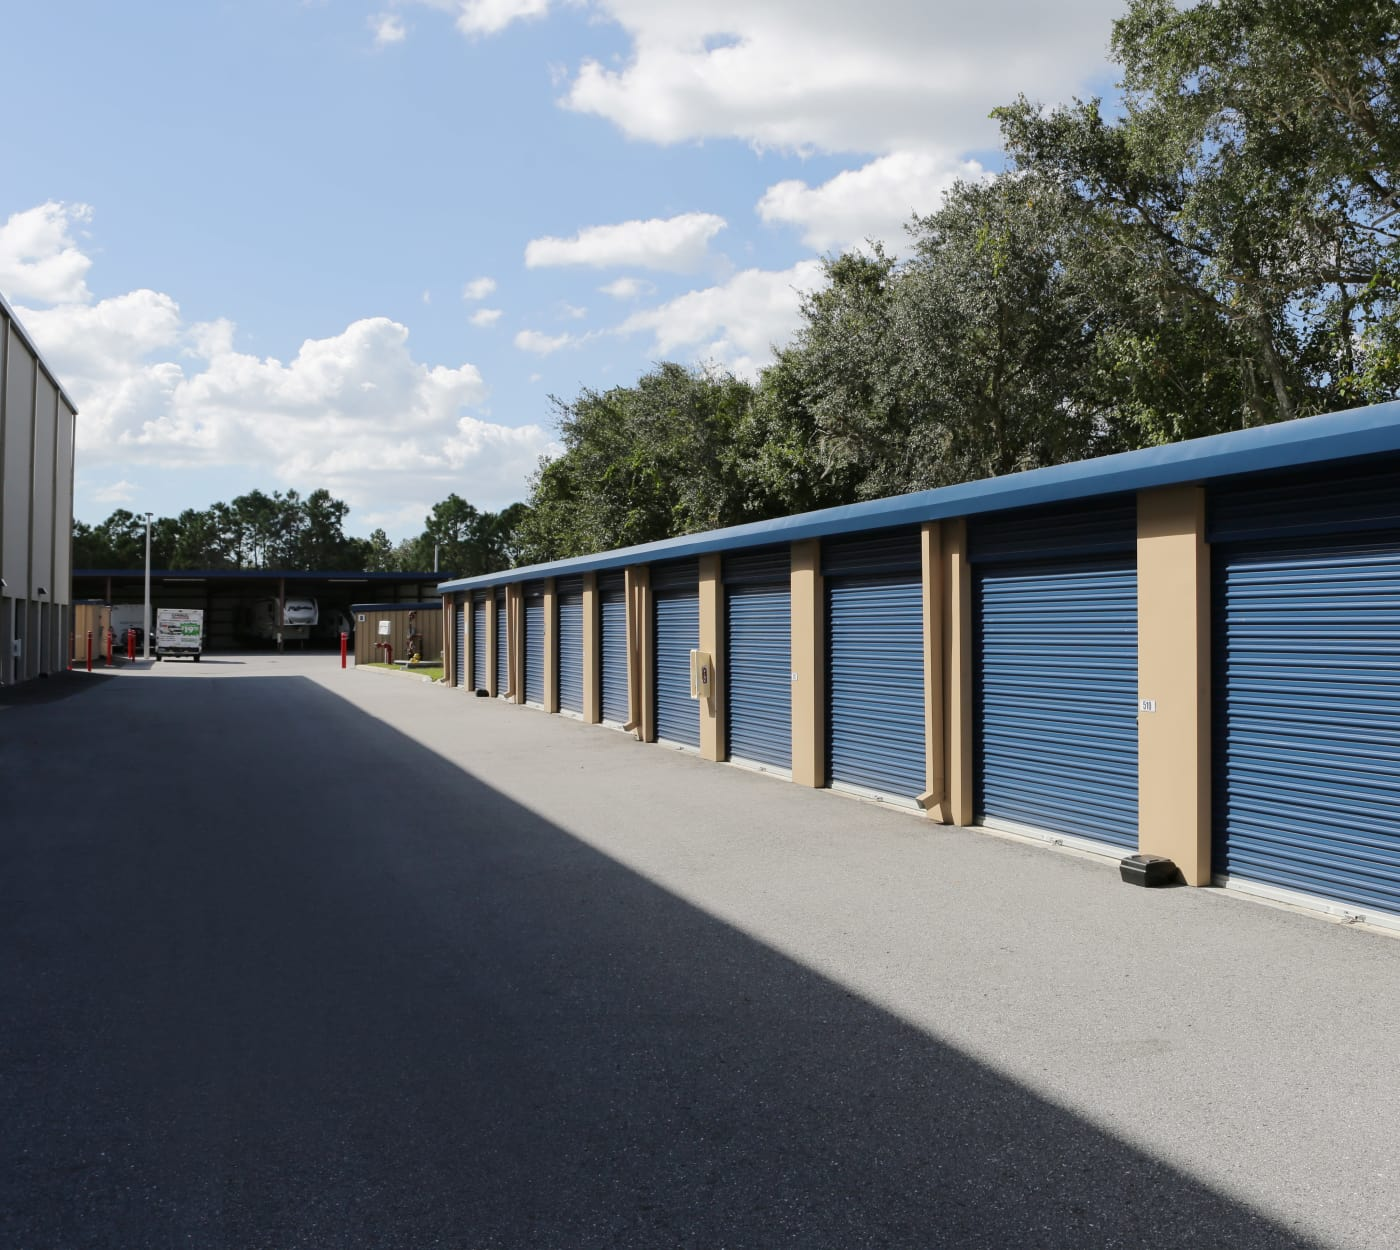 Ground-floor units at Midgard Self Storage in Bradenton, Florida